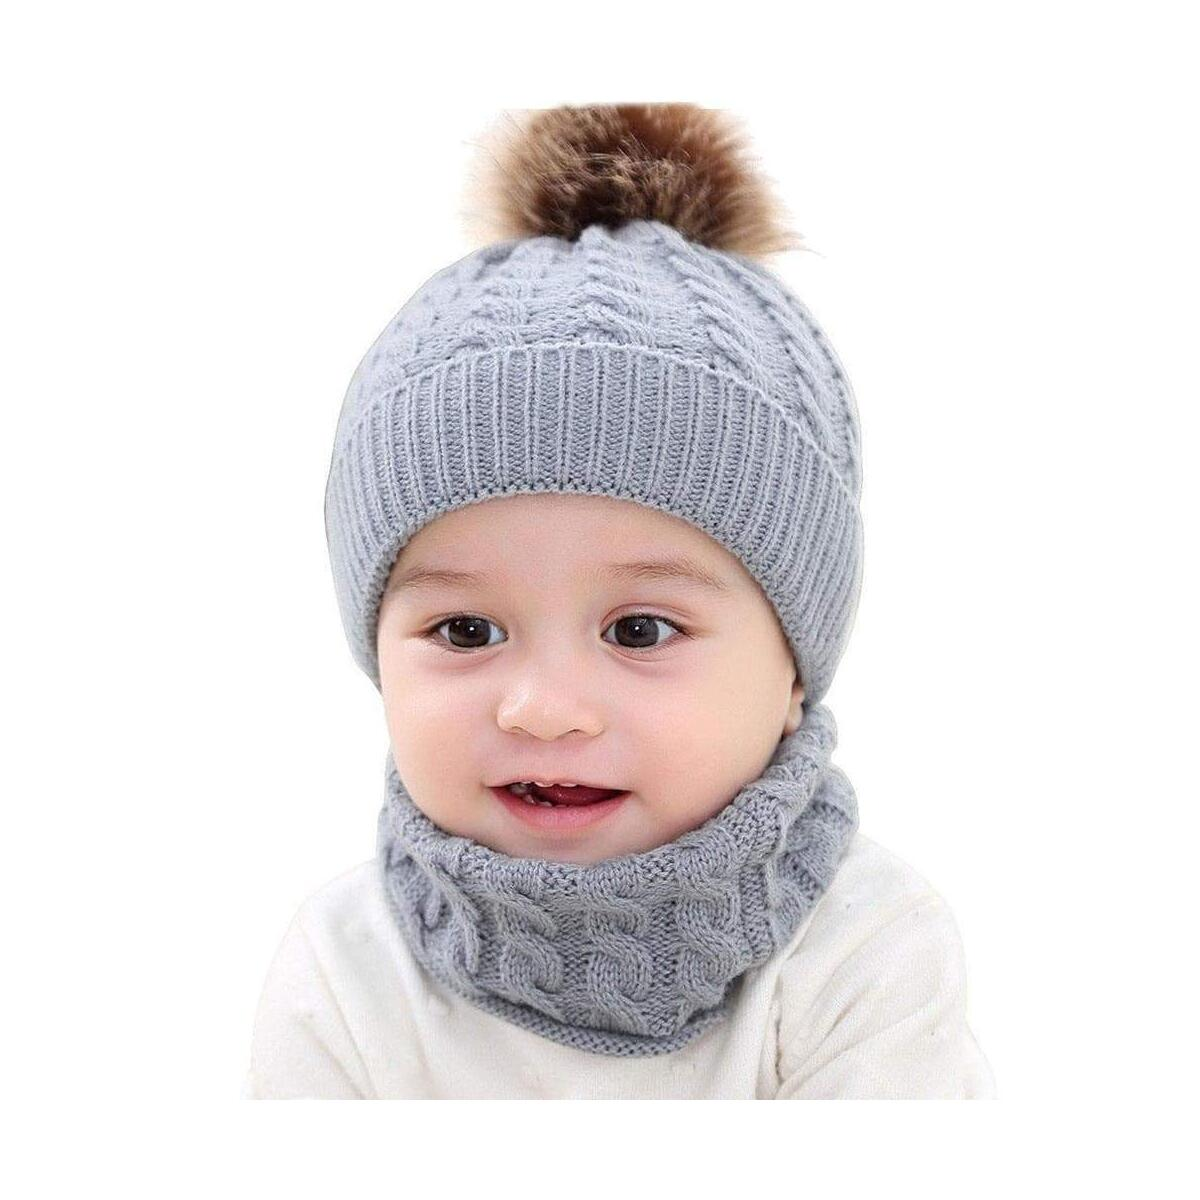 Baby Winter Warm Hat and Scarf Set, Beanie Hat with Snood Scarf Neck Warmer